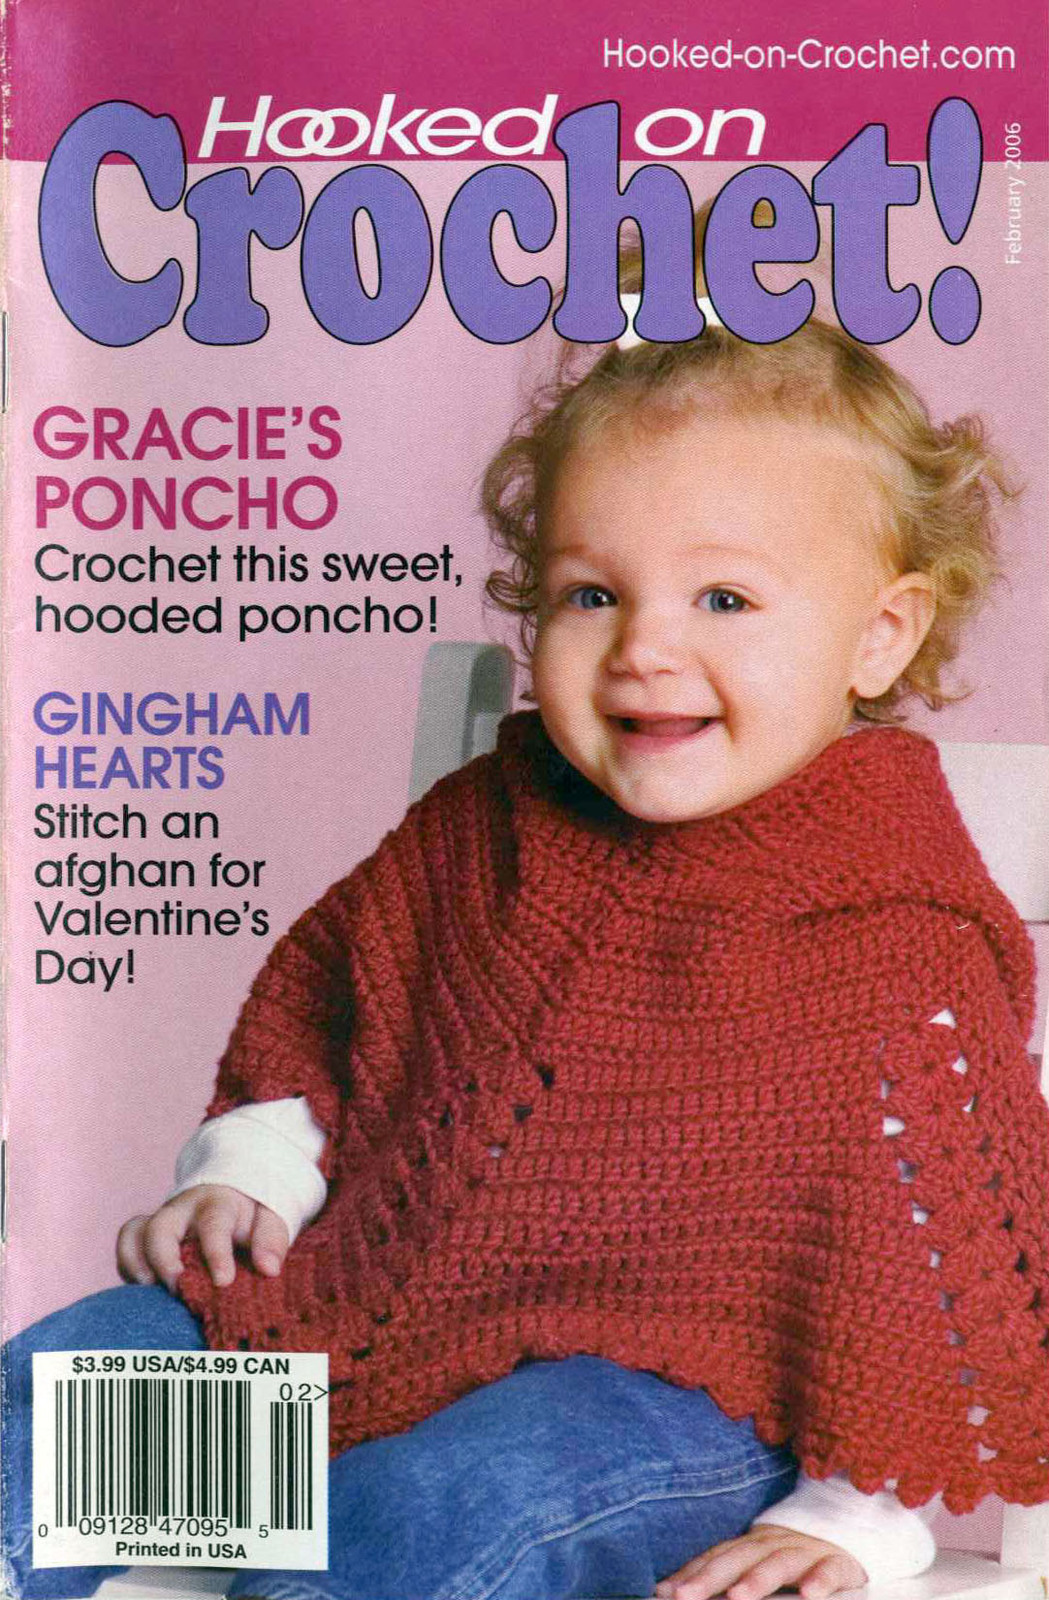 Hooked on Crochet! patterns #115; February 2006